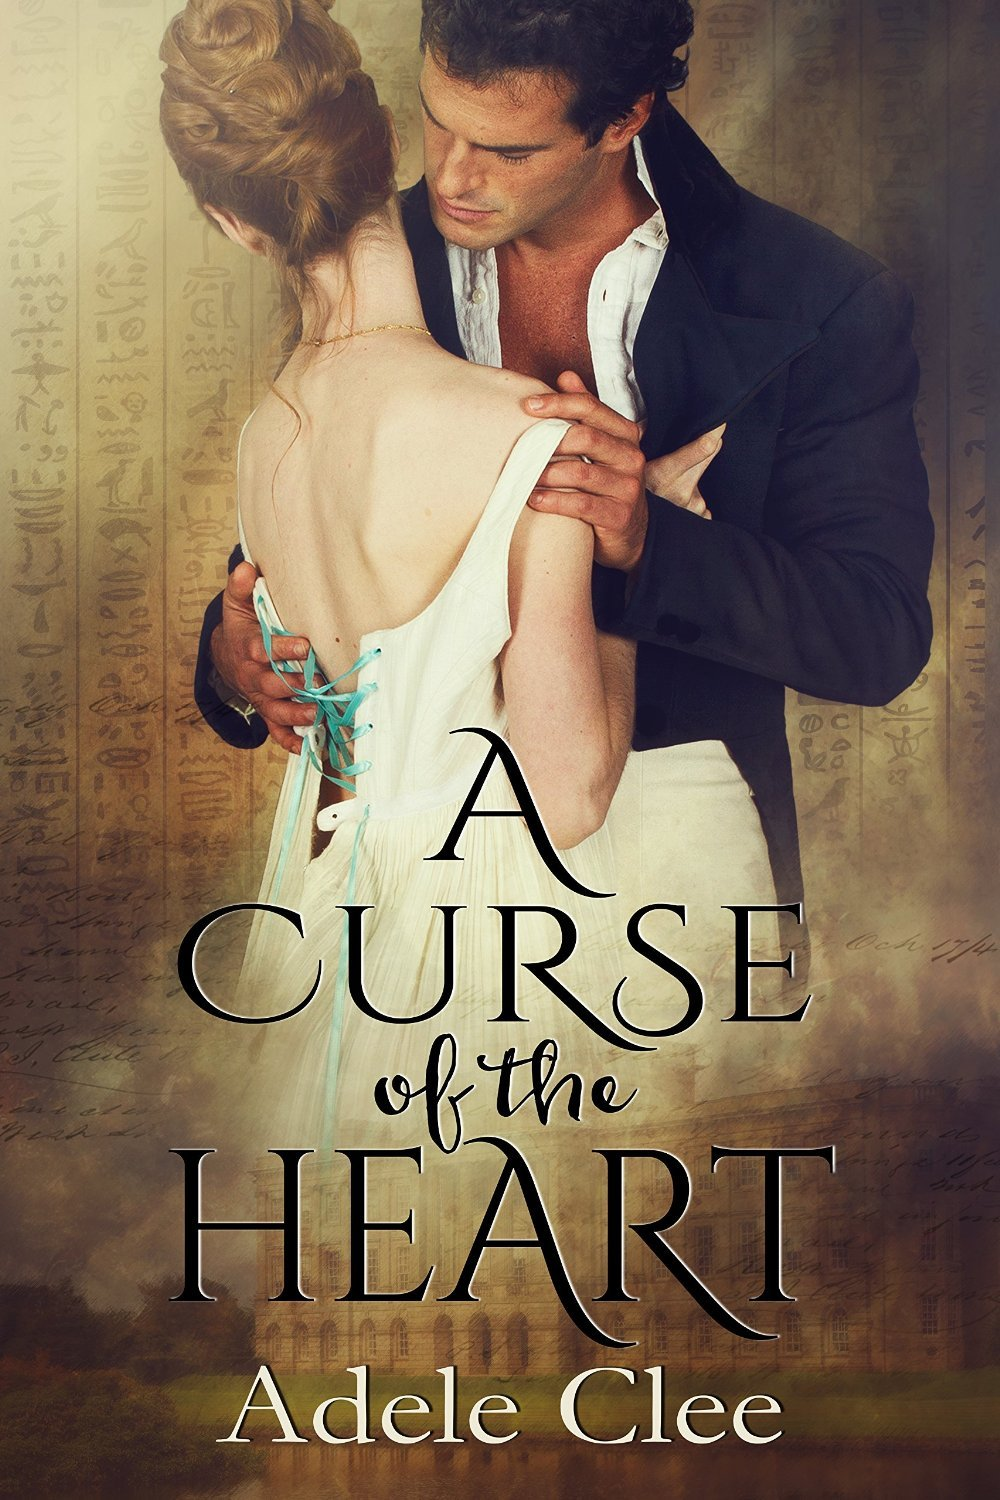 A Curse of the Heart Adele Clee